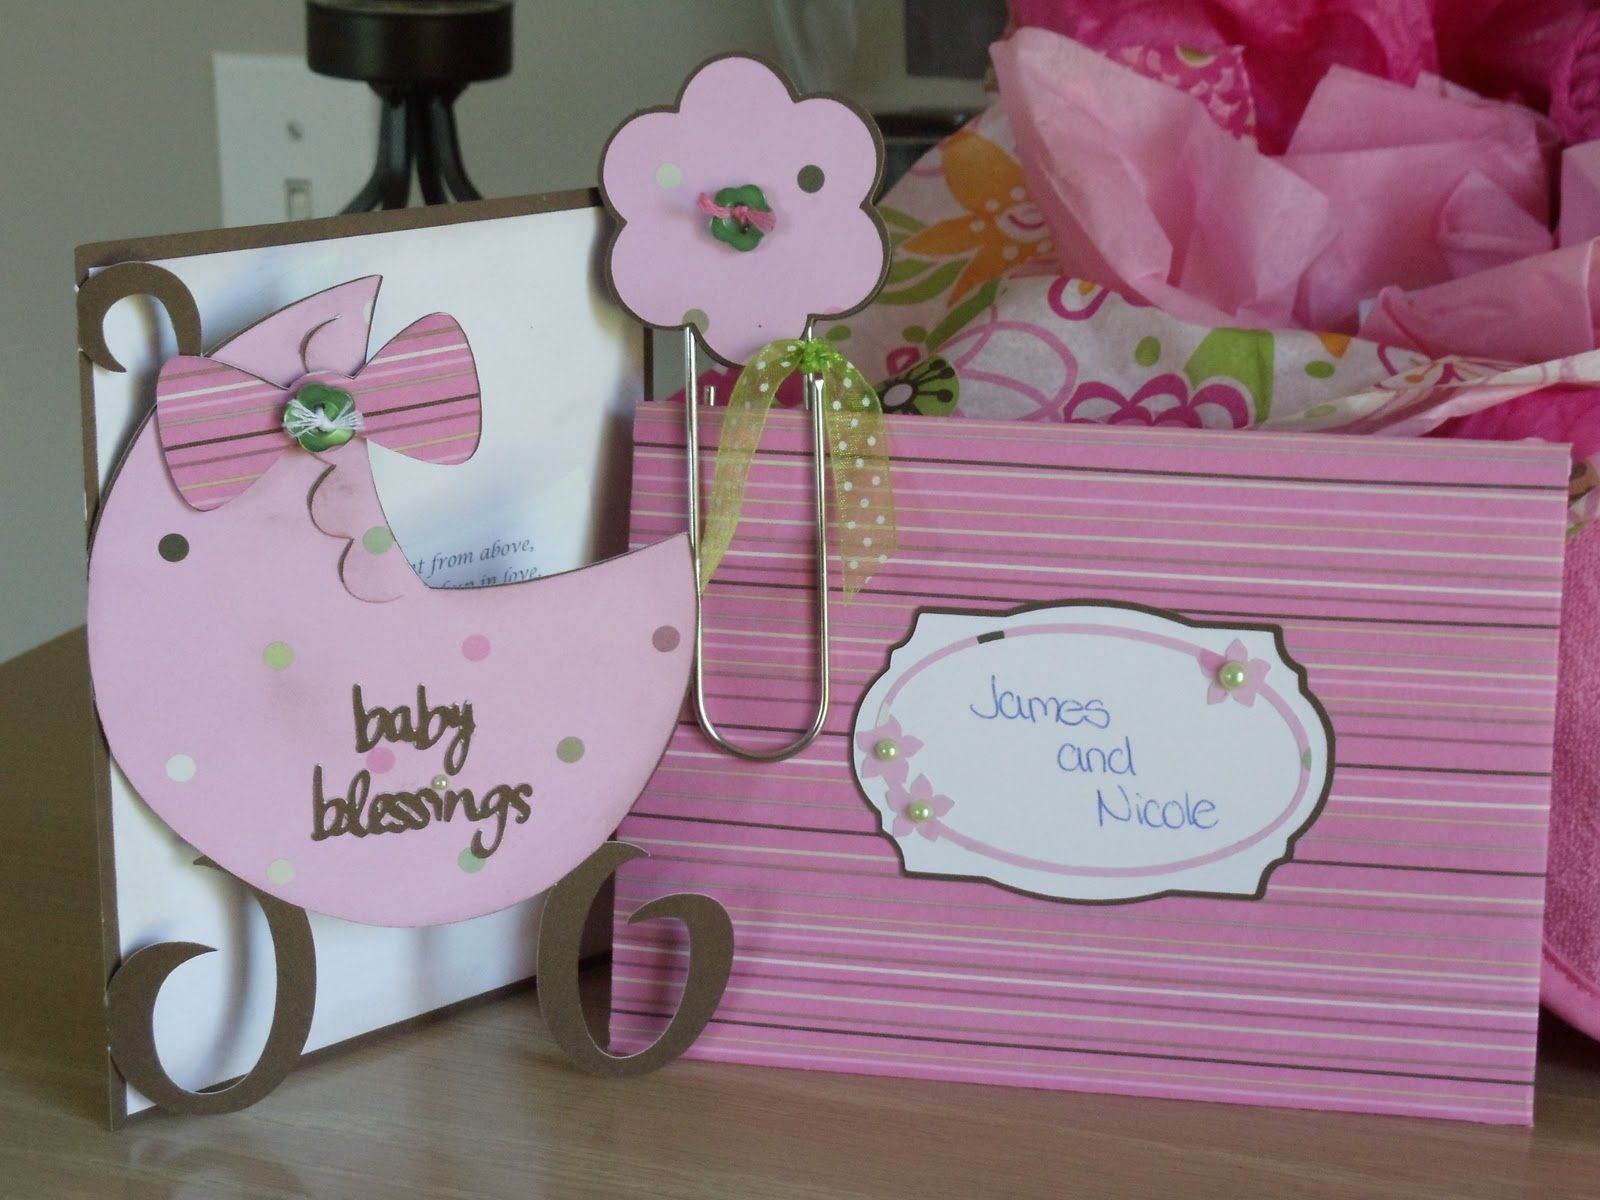 Cricut Baby Shower Ideas - Made This Cute Baby Shower